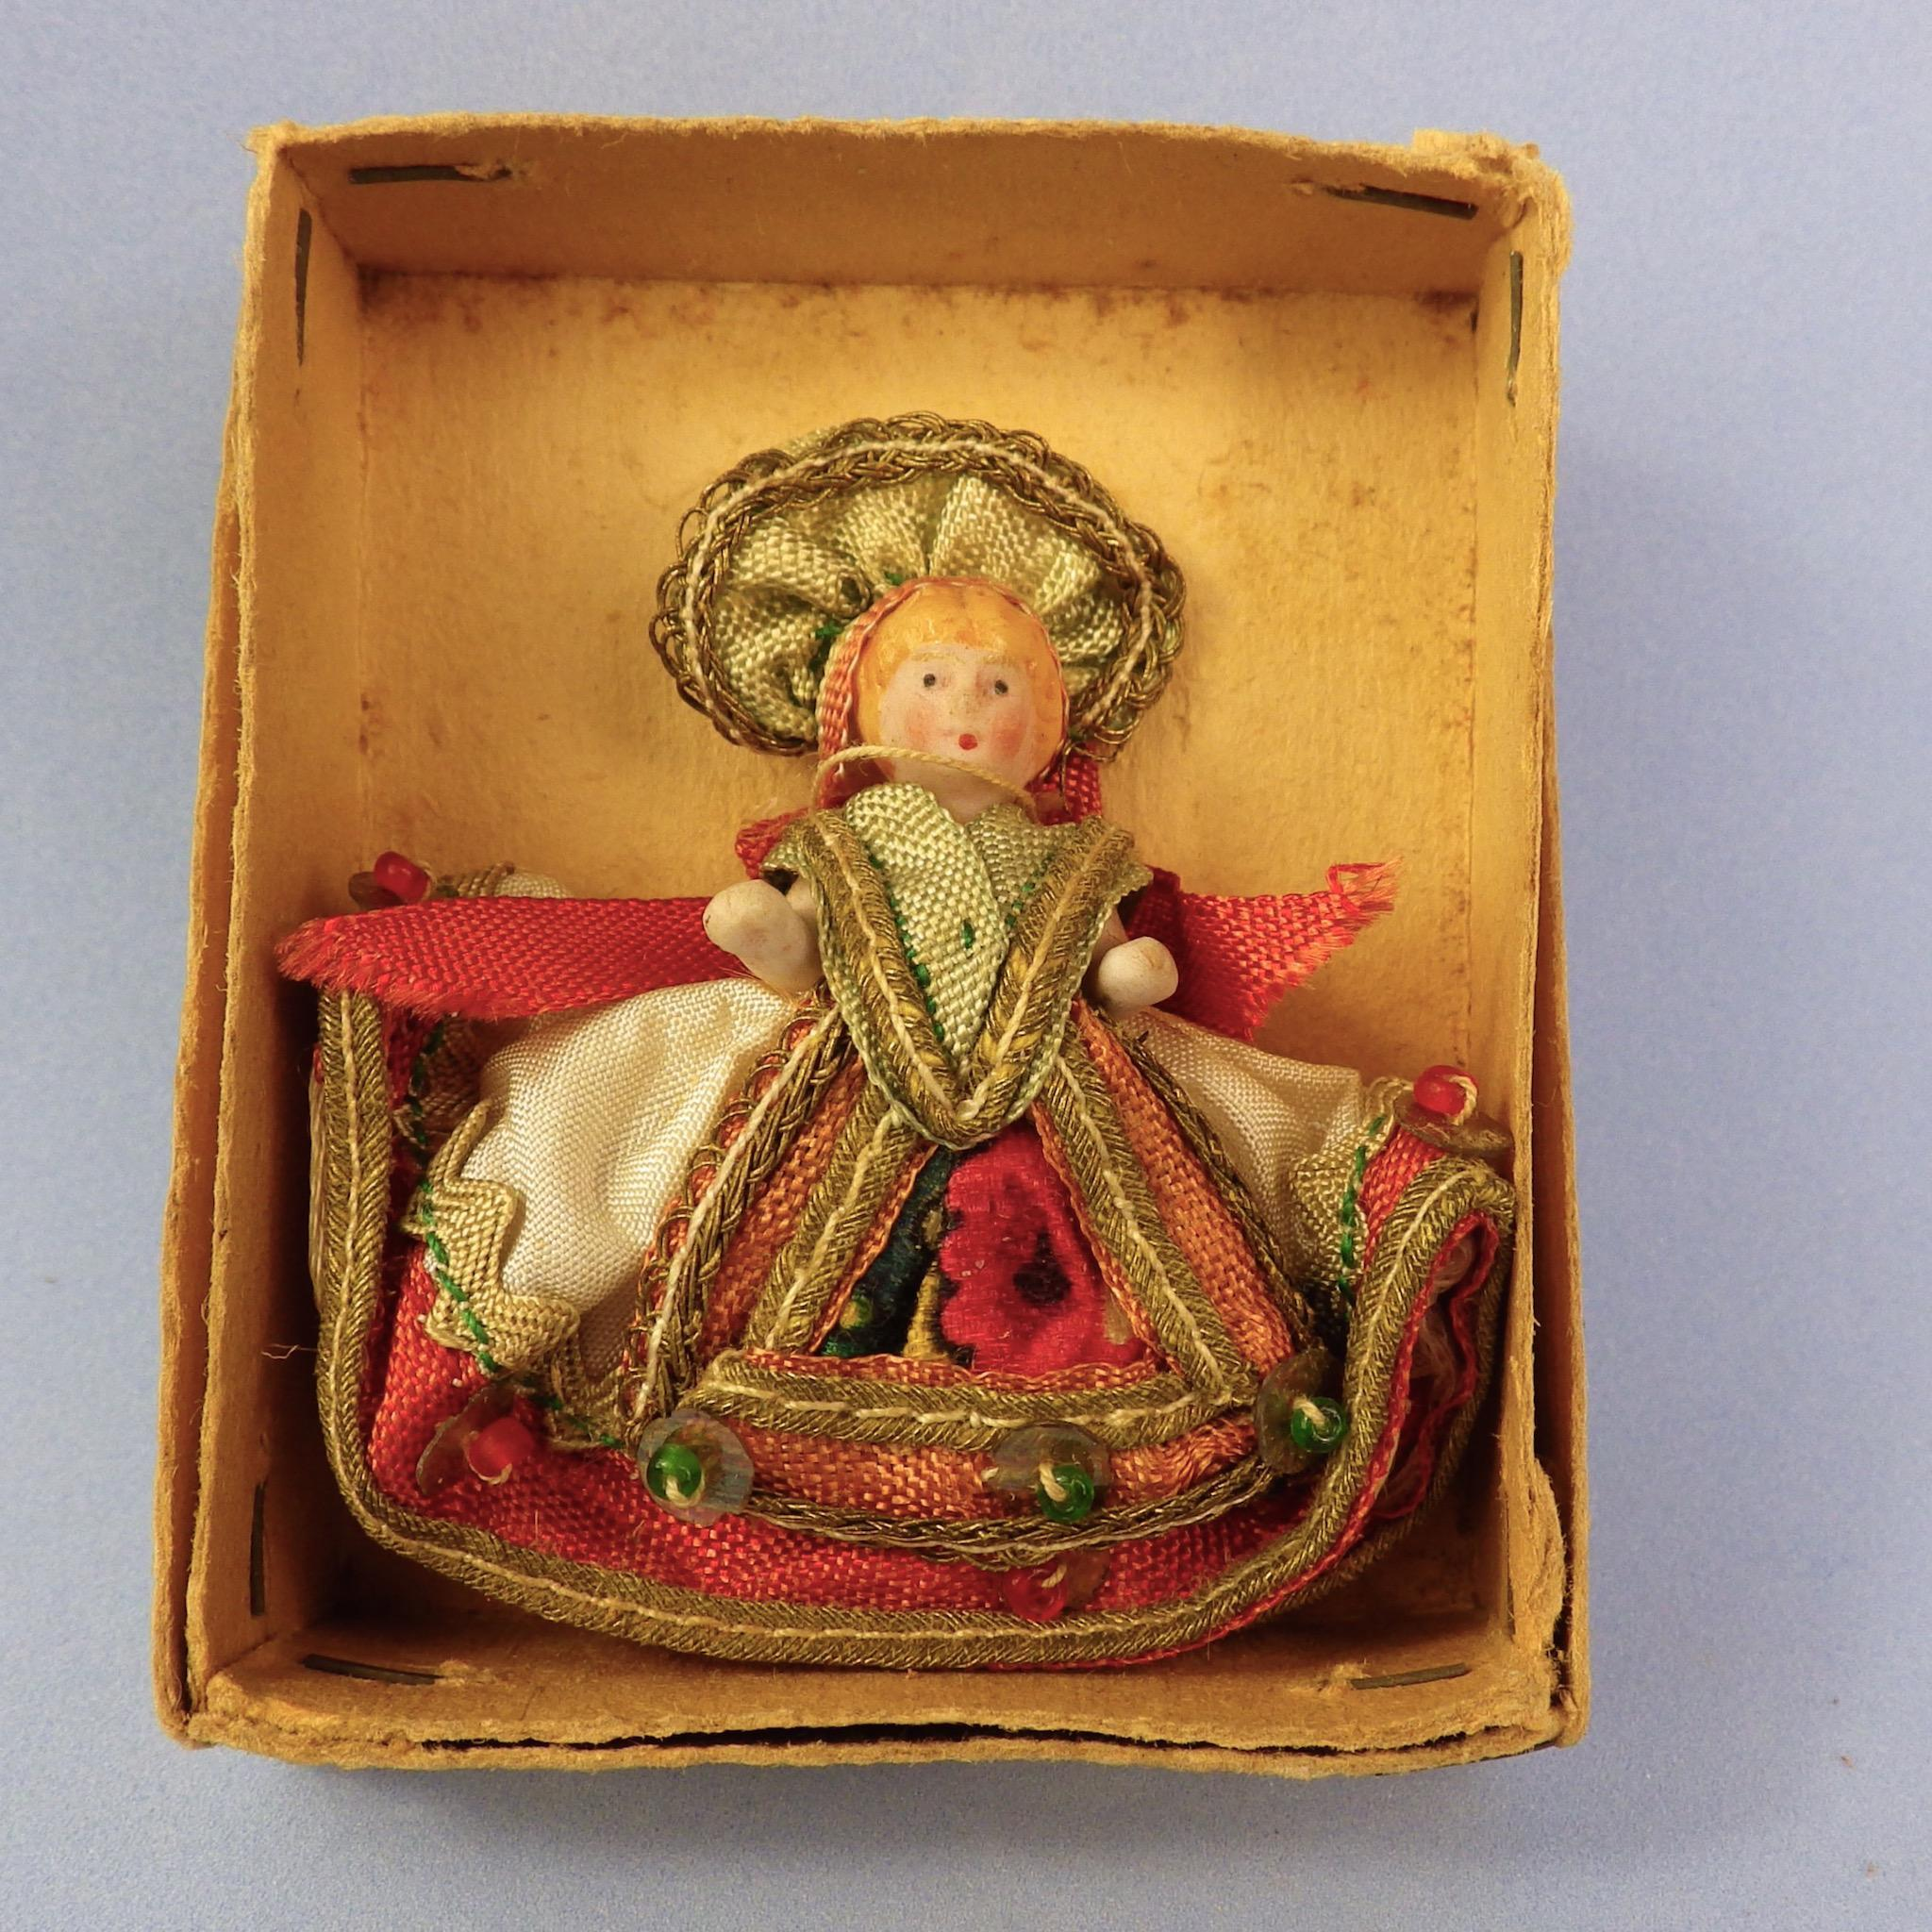 Tiny All Bisque Doll, Elaborate Hungary Costume, Original Box